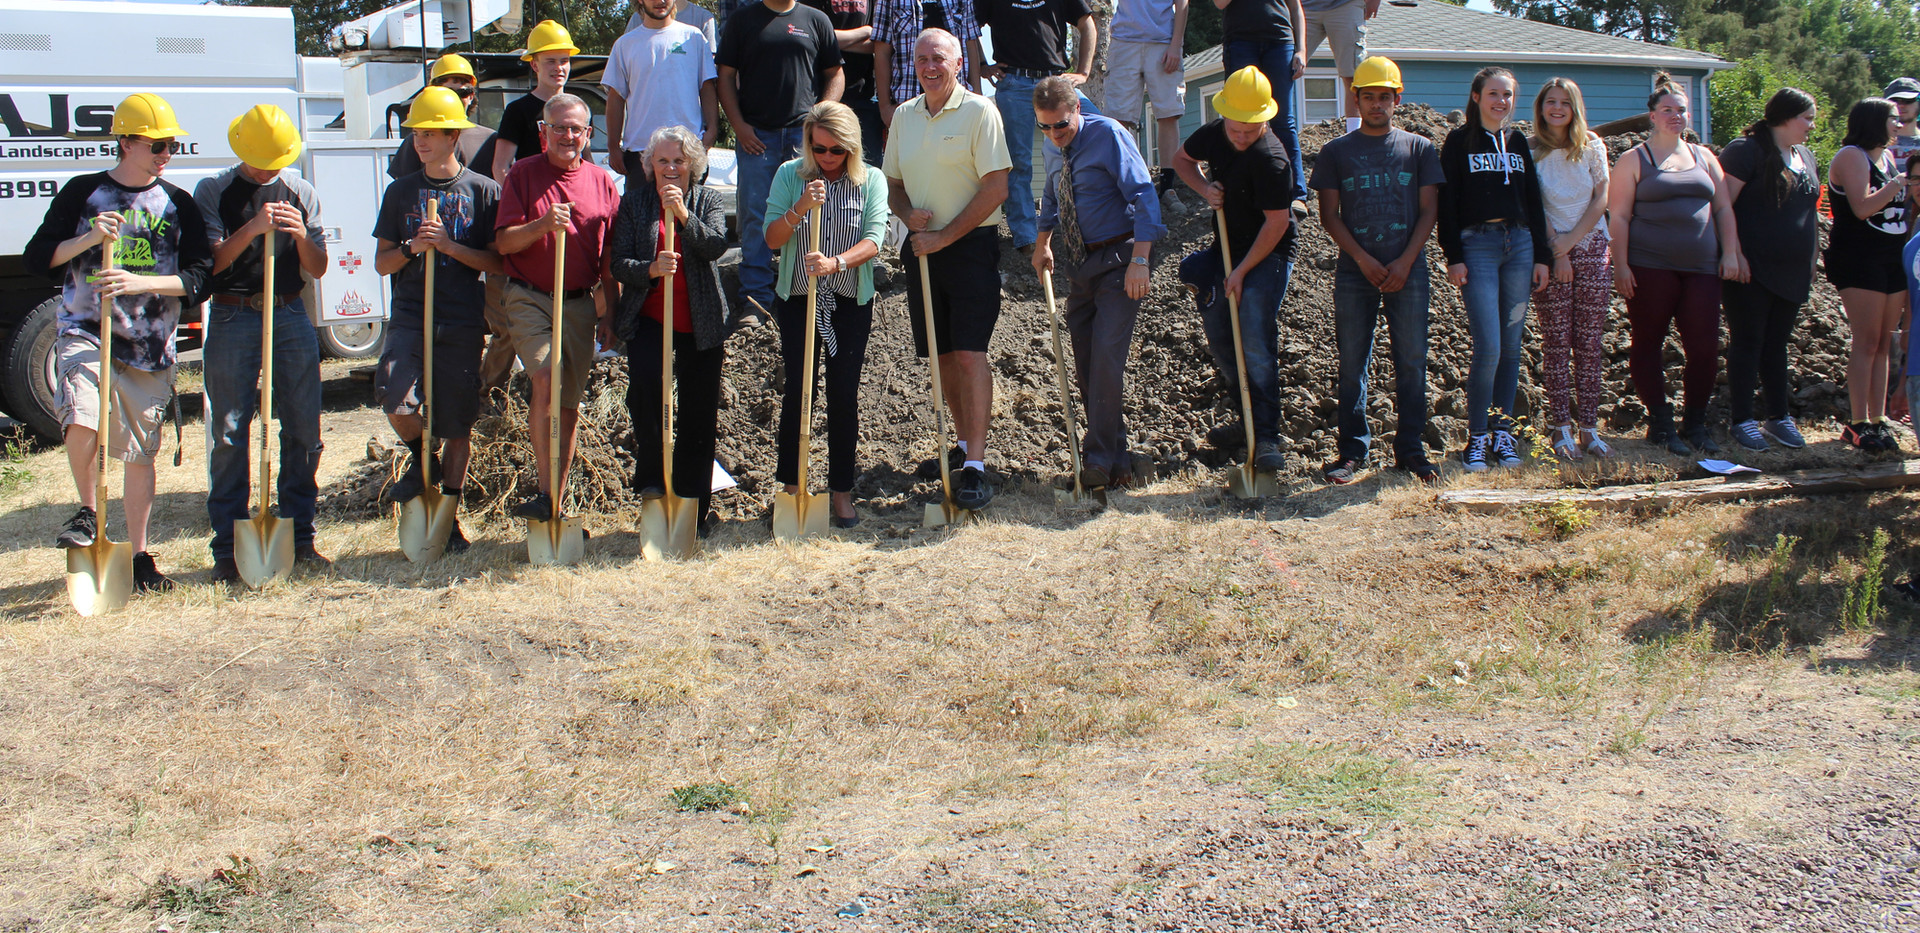 2017 Groundbreaking Ceremony